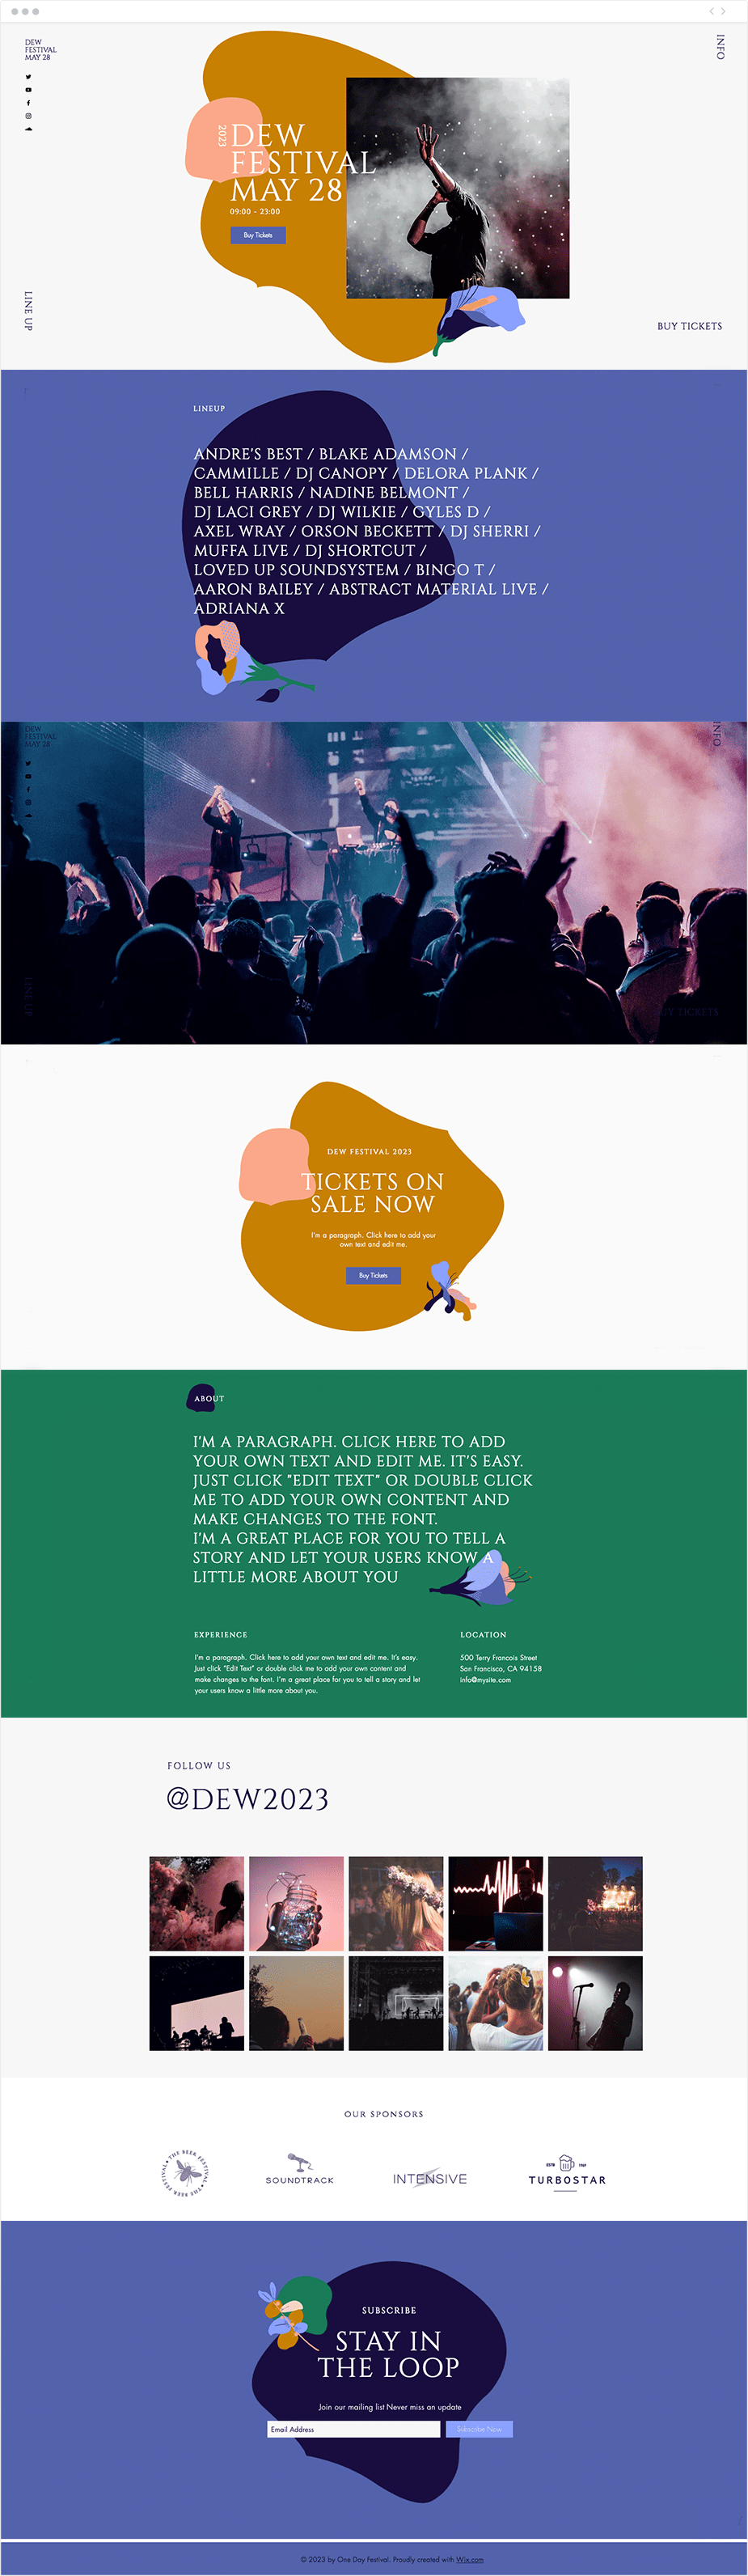 One day festival website template